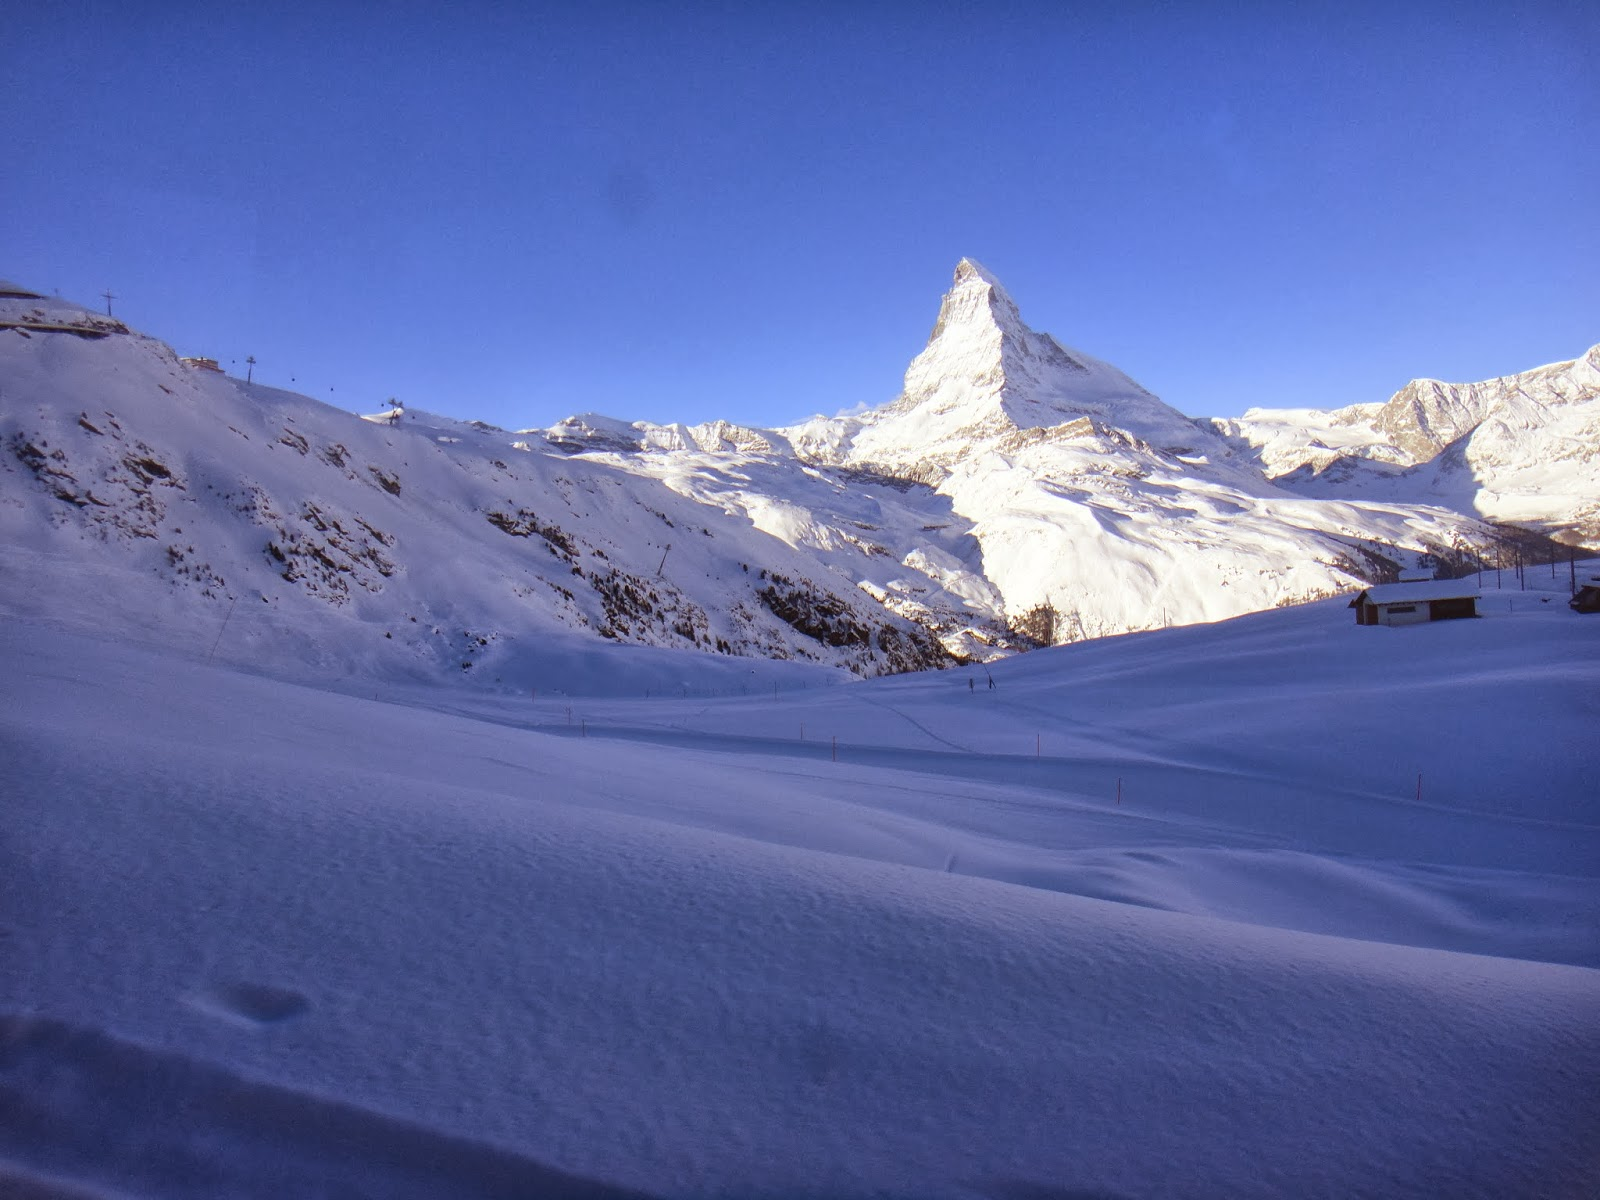 Lifestyle, Skiing, Switzerland, Zermatt, Holiday, Winter, Sport, Ski, Ski Holiday, Ski Resort, Travel, Snow, Travelling, Pictures, Zermatt Switzerland, Skier, Snowboarding, Ski Zermatt, Ski Zermatt Switzerland, Matterhorn